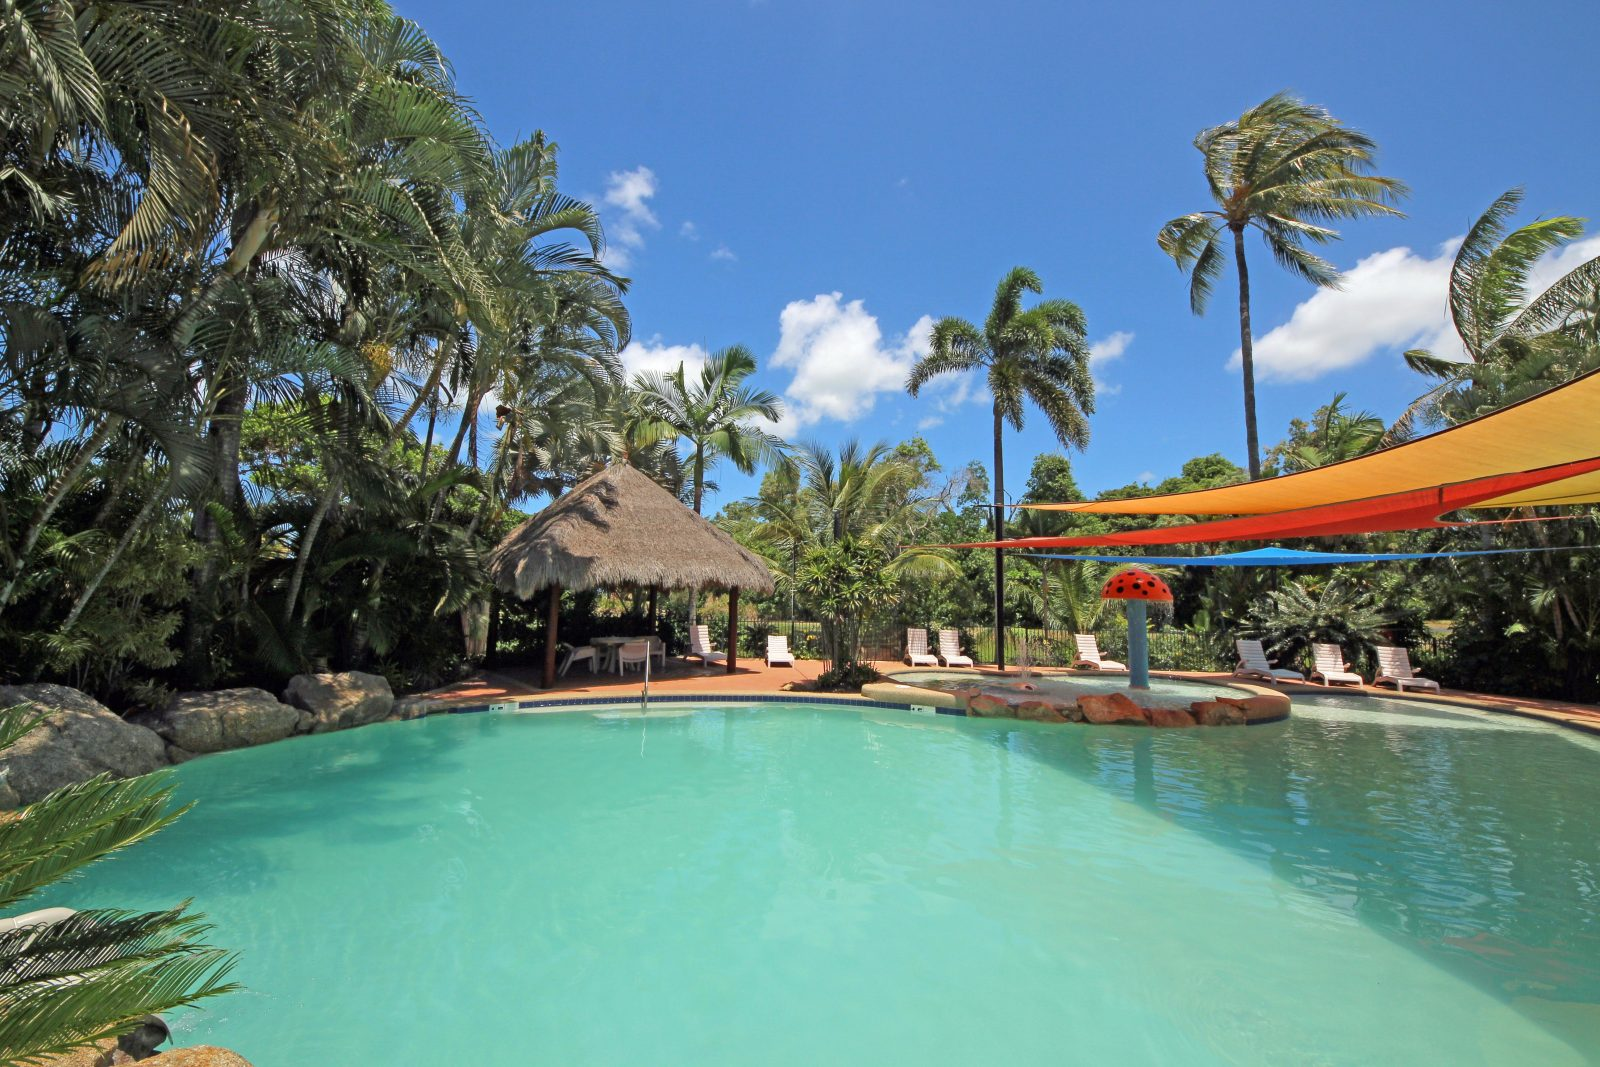 Resort style pool with children's wading area and pool slide